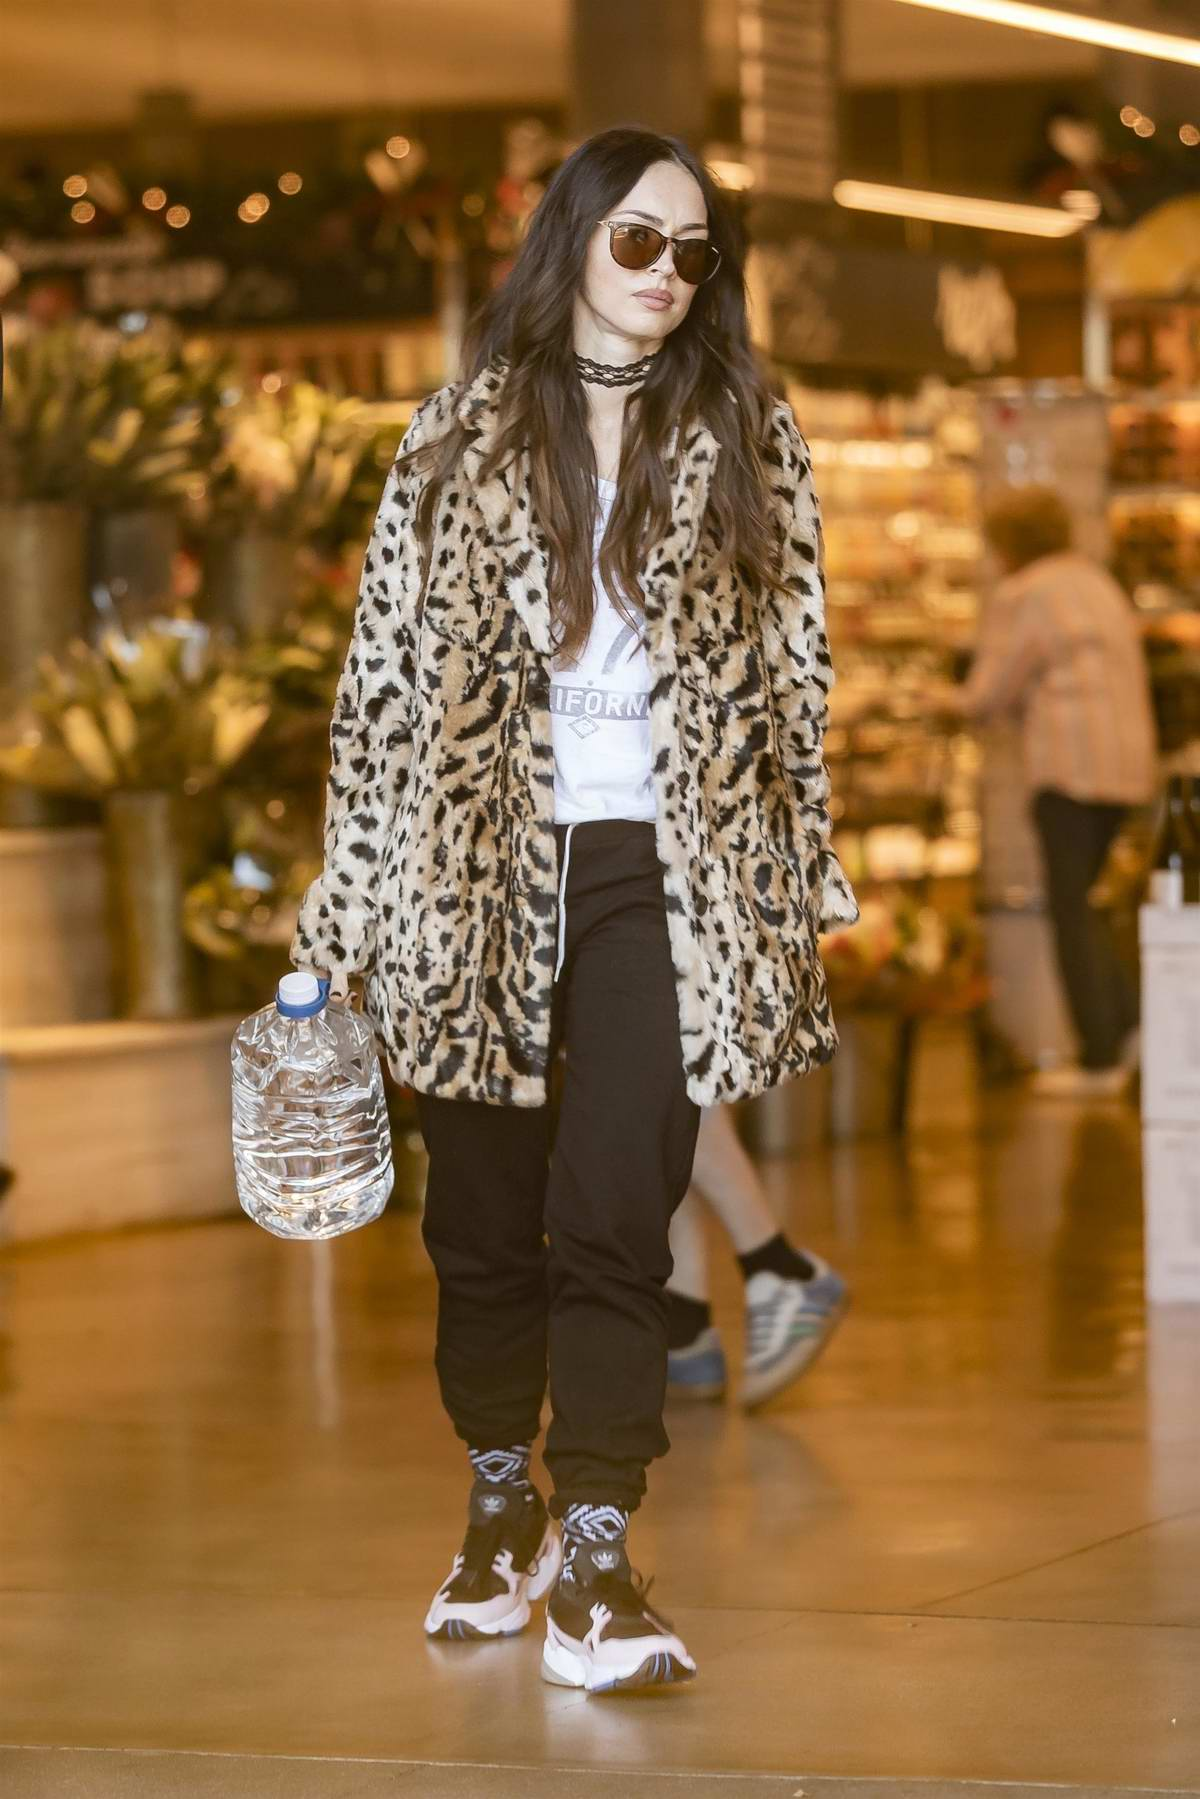 Megan Fox wore a leopard print coat as she stepped out with Brian Austin Green and their youngest son to pick up some groceries at Bristol Farms in Los Angeles